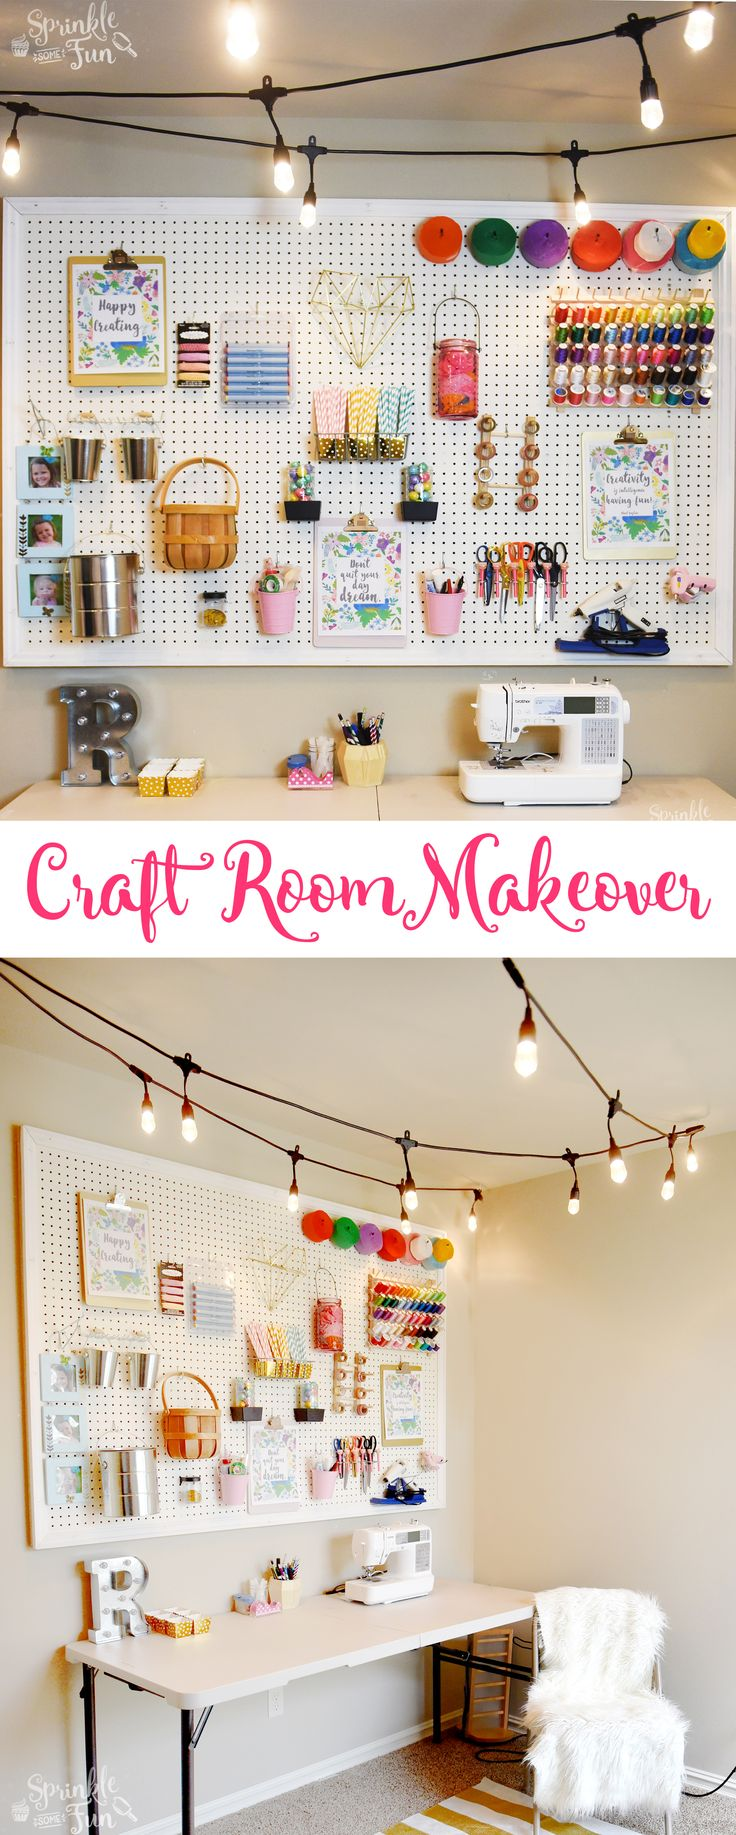 Craft Room Makeover with Café Lights! #ad #EnbrightenLife @JascoProducts